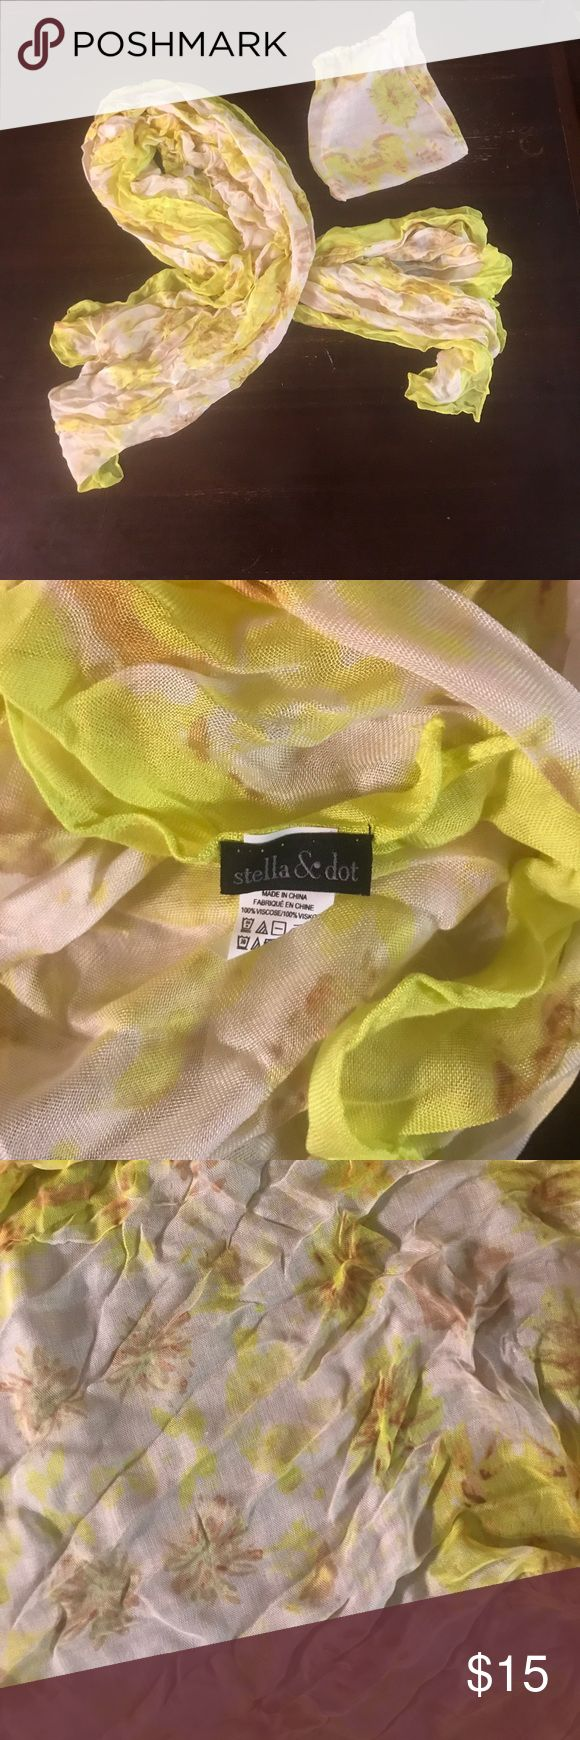 Stella & Dot Scarf Stella & Dot yellow floral print scarf and storage bag. Great condition and hardly worn. Stella & Dot Accessories Scarves & Wraps